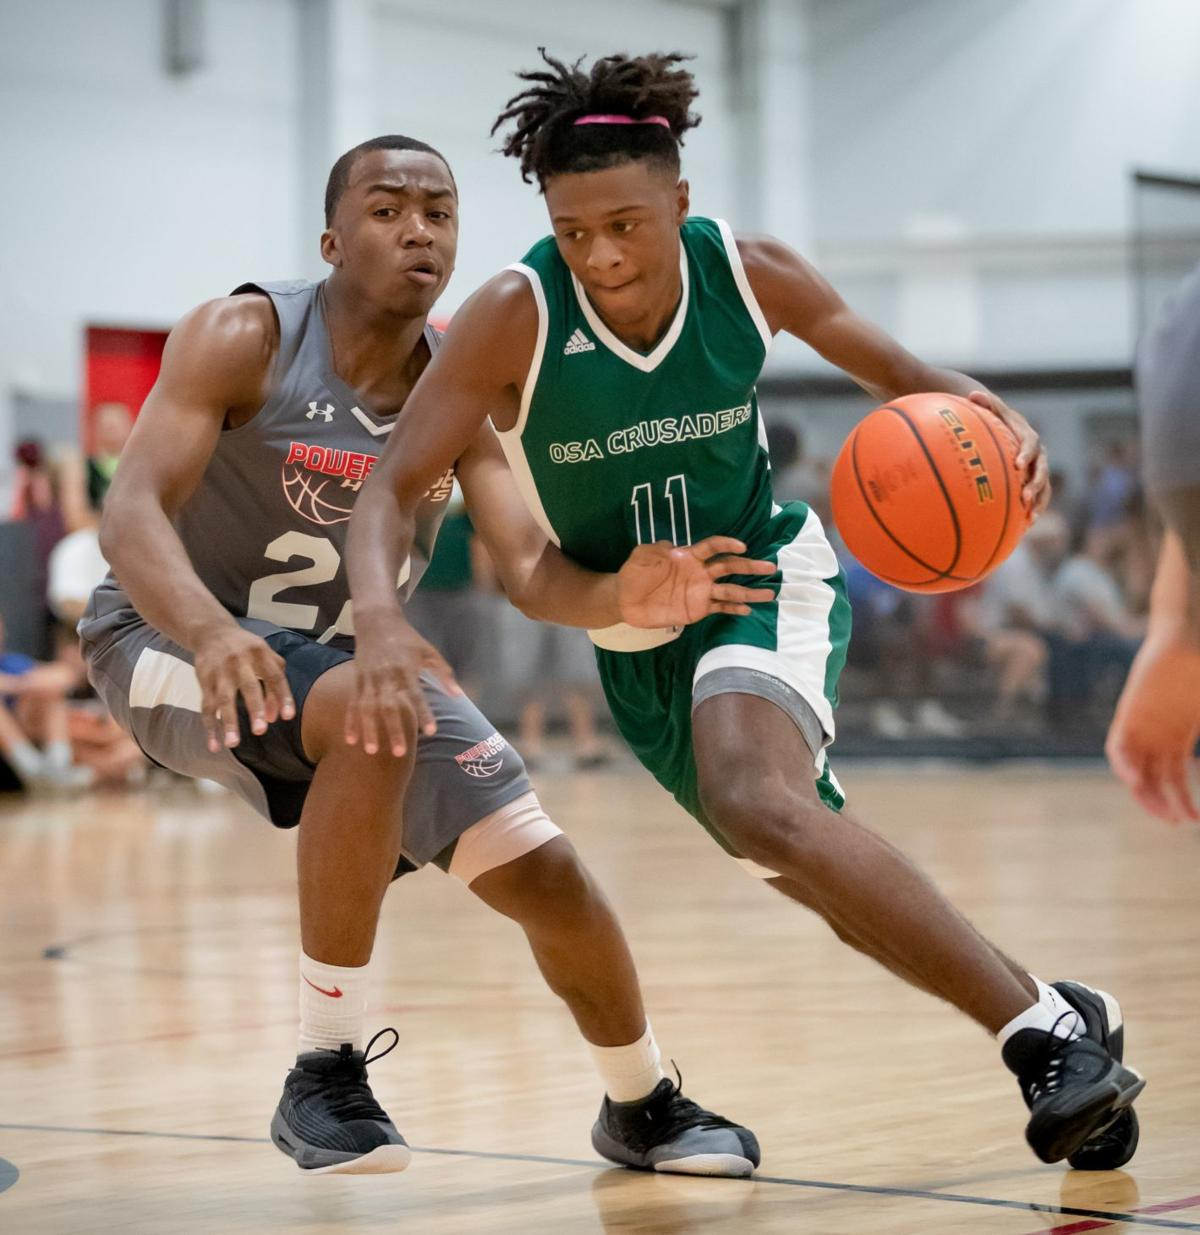 Sautter: Shiloh Robinson, Shereef Mitchell among 14 standouts at River Cities Summer Tip Off